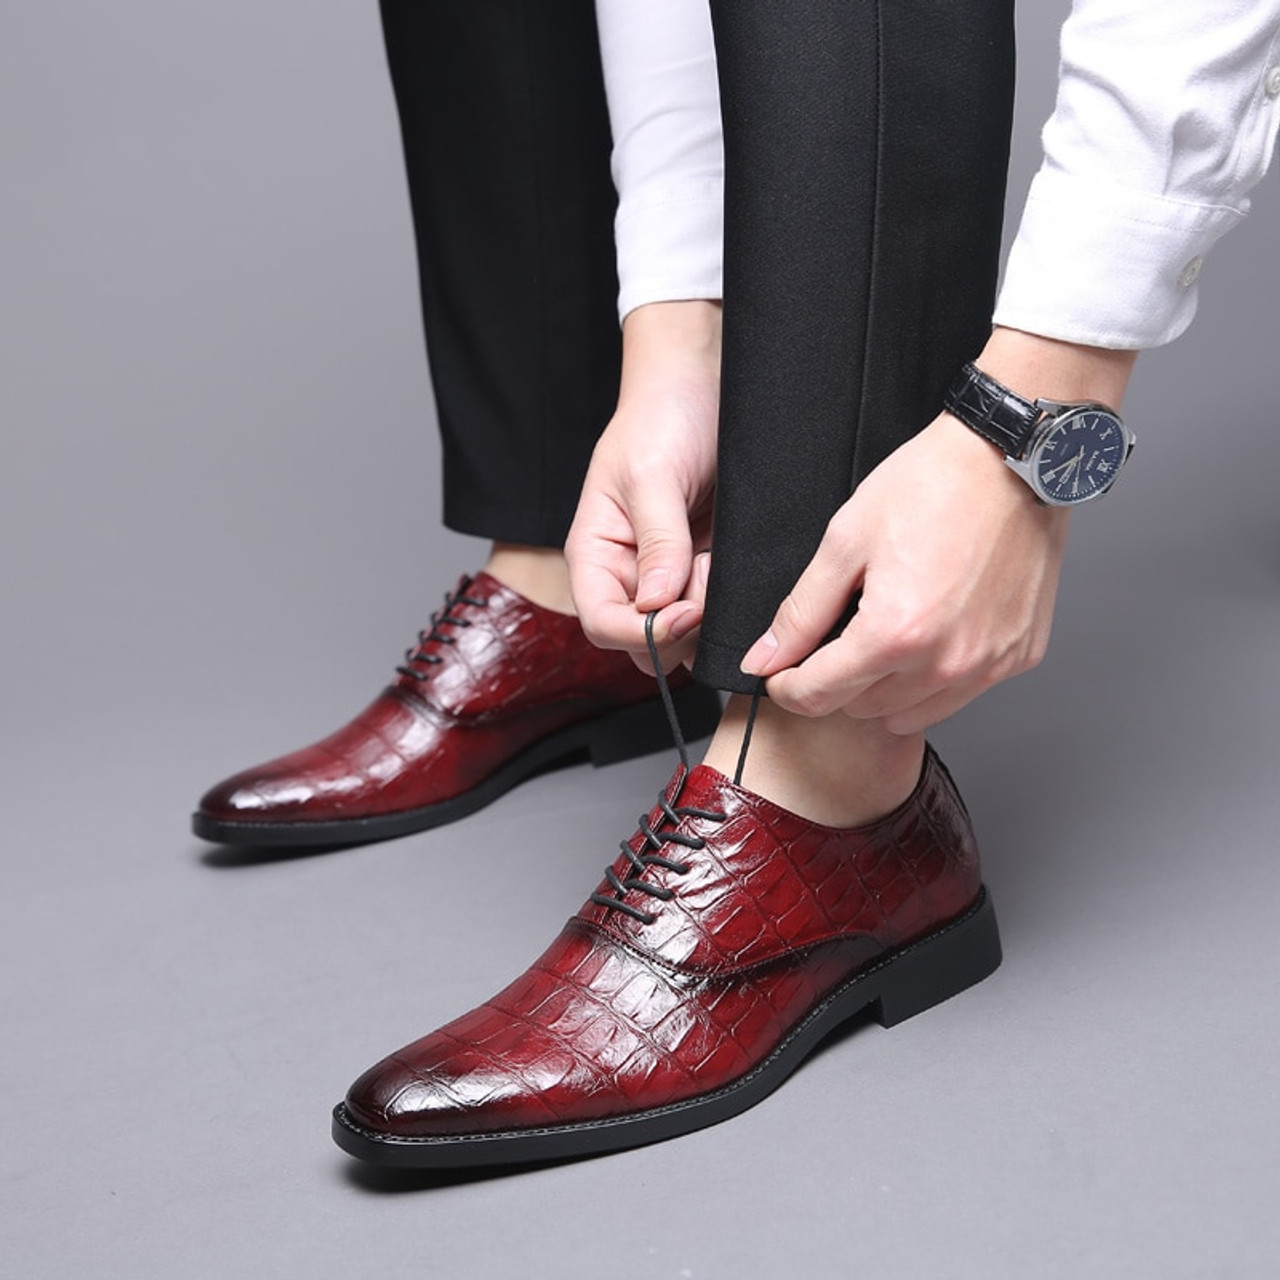 58afb55c1697 Misalwa Classic Men Shoes For Wedding Brand PU Leather Suit Easy wear Men  Pointed Toe Shoes Lace-Up Business Formal Dress Shoes